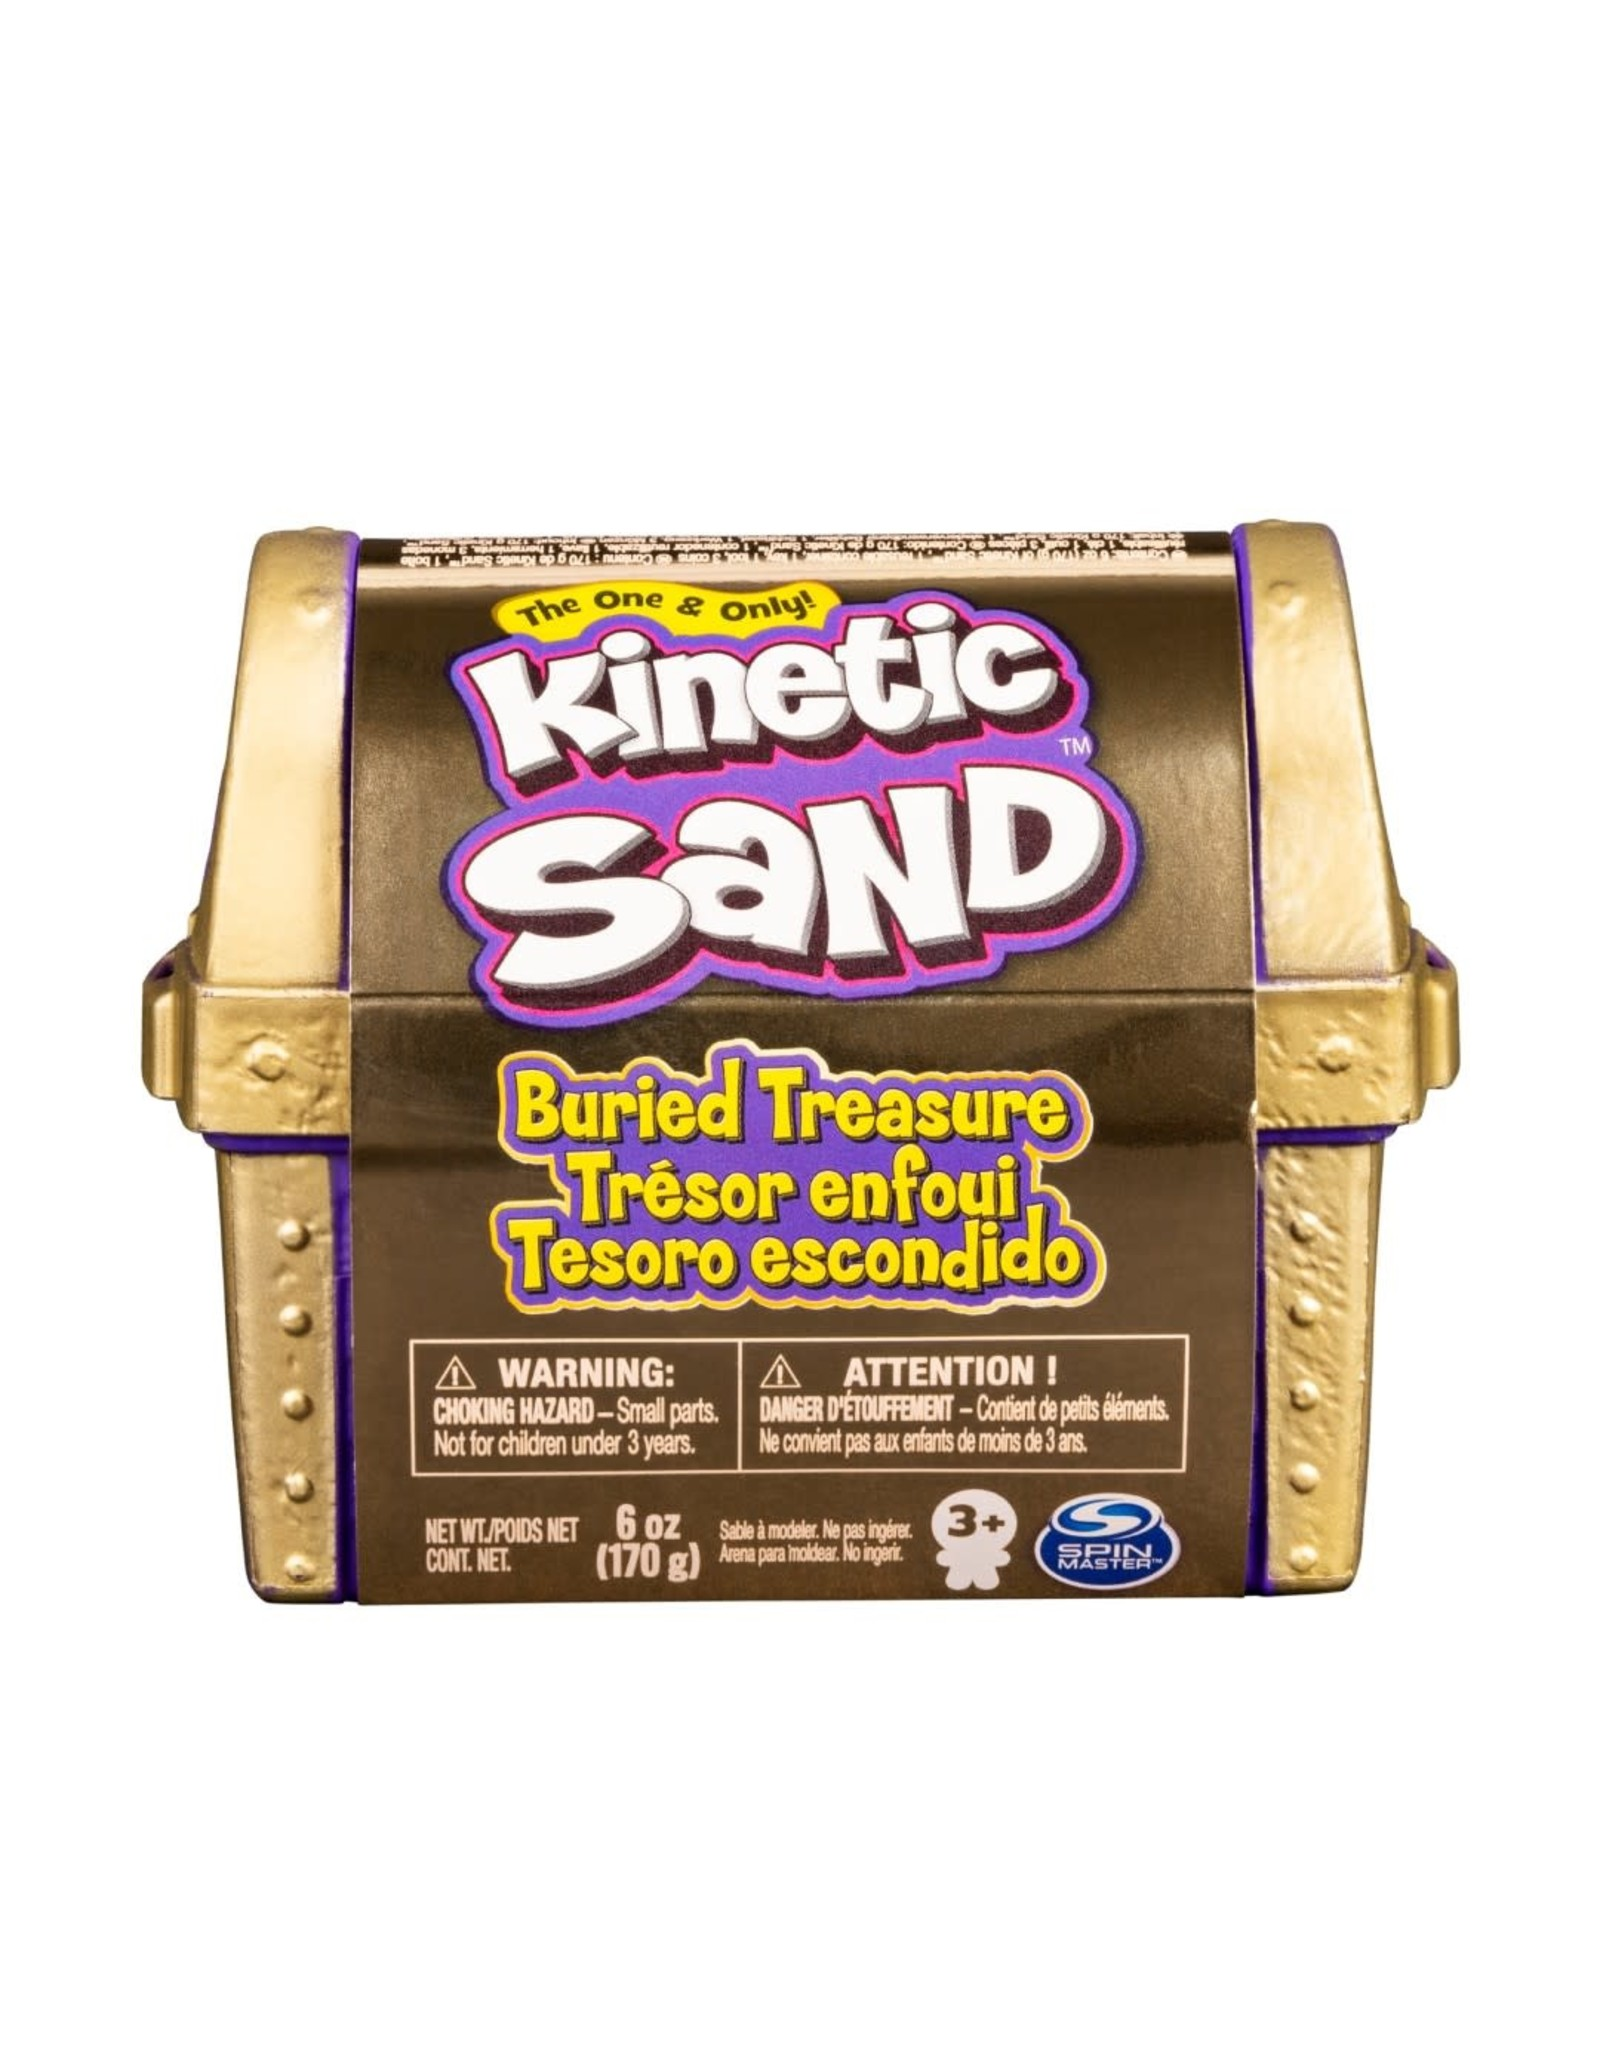 Kinetic Sand Kinetic Sand, Buried Treasure Playset with 6oz of All-Natural Kinetic Beach Sand and Hidden Tool (Style May Vary)